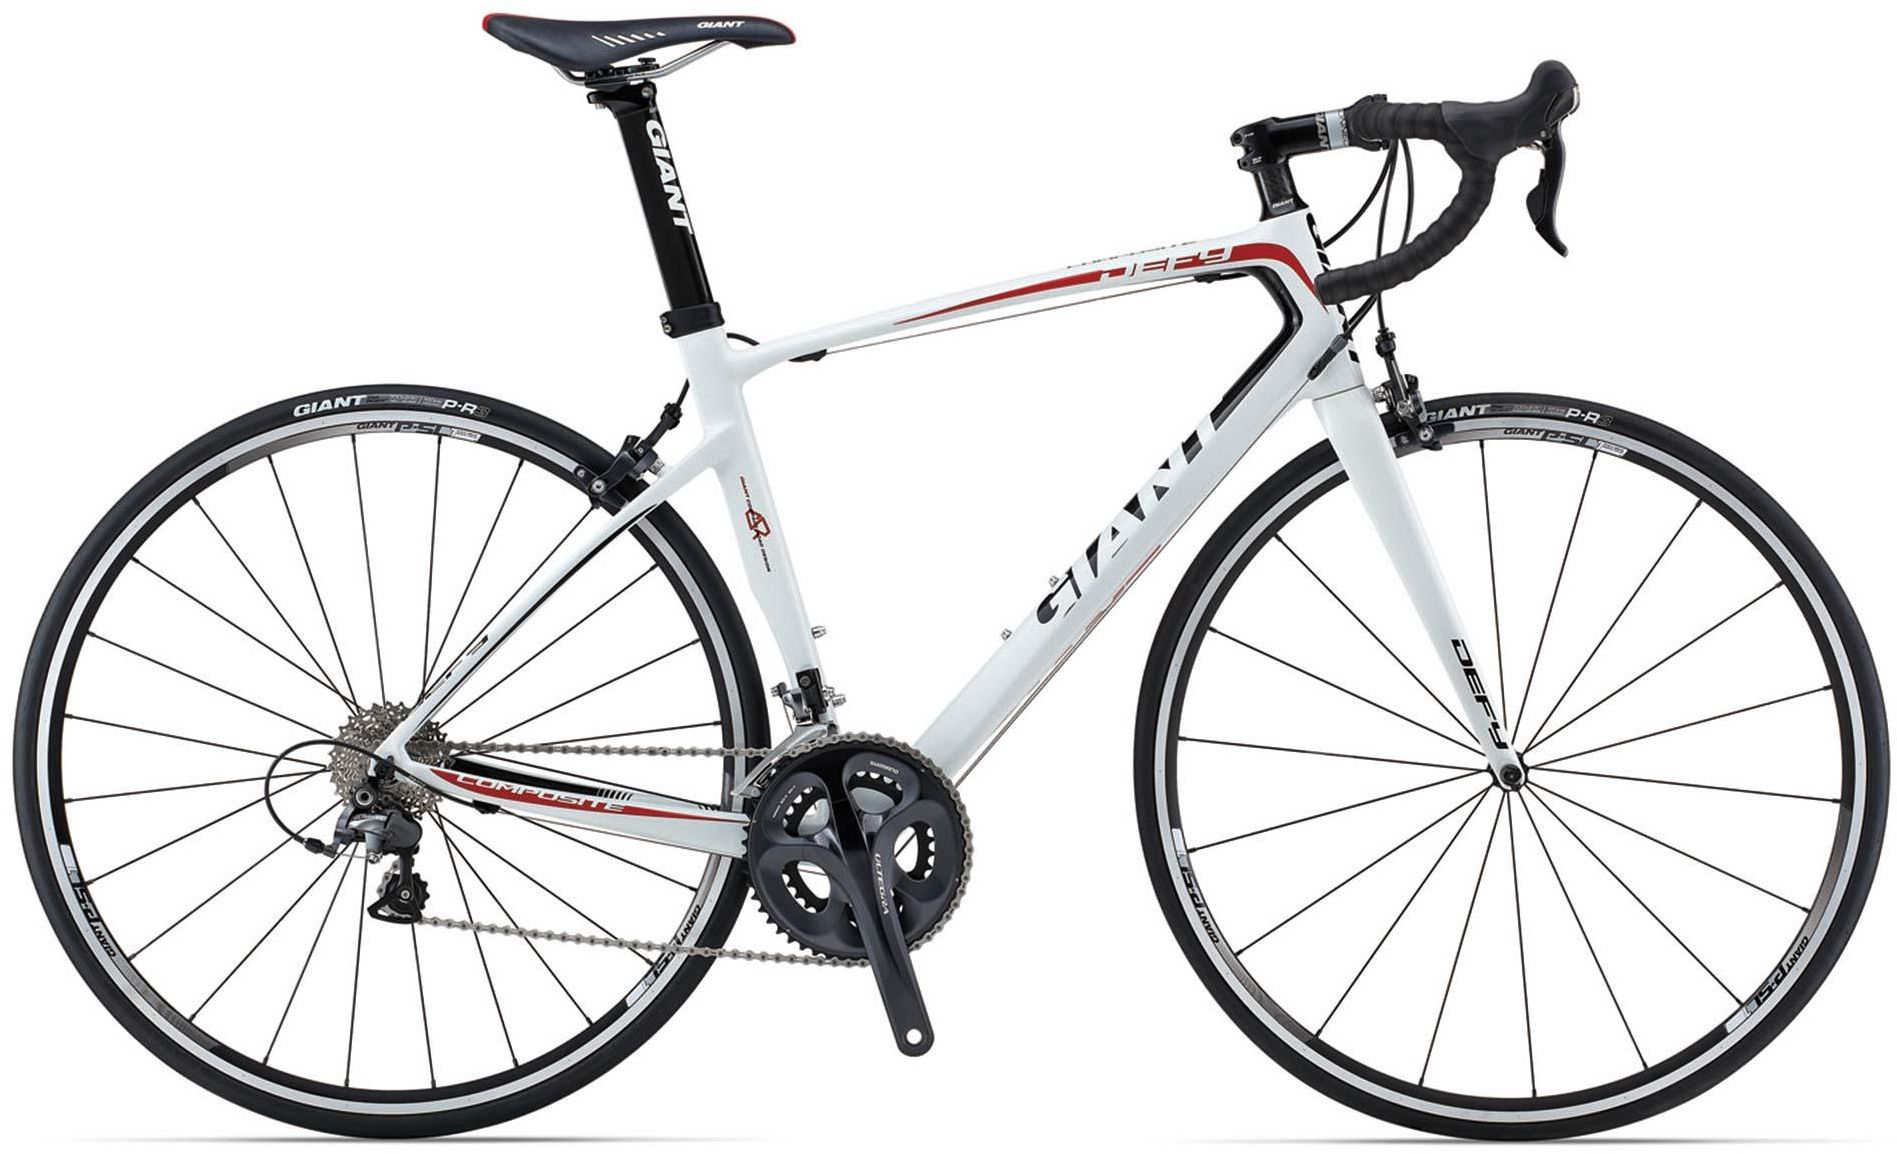 Giant Defy Composite 1 2013 review - The Bike List